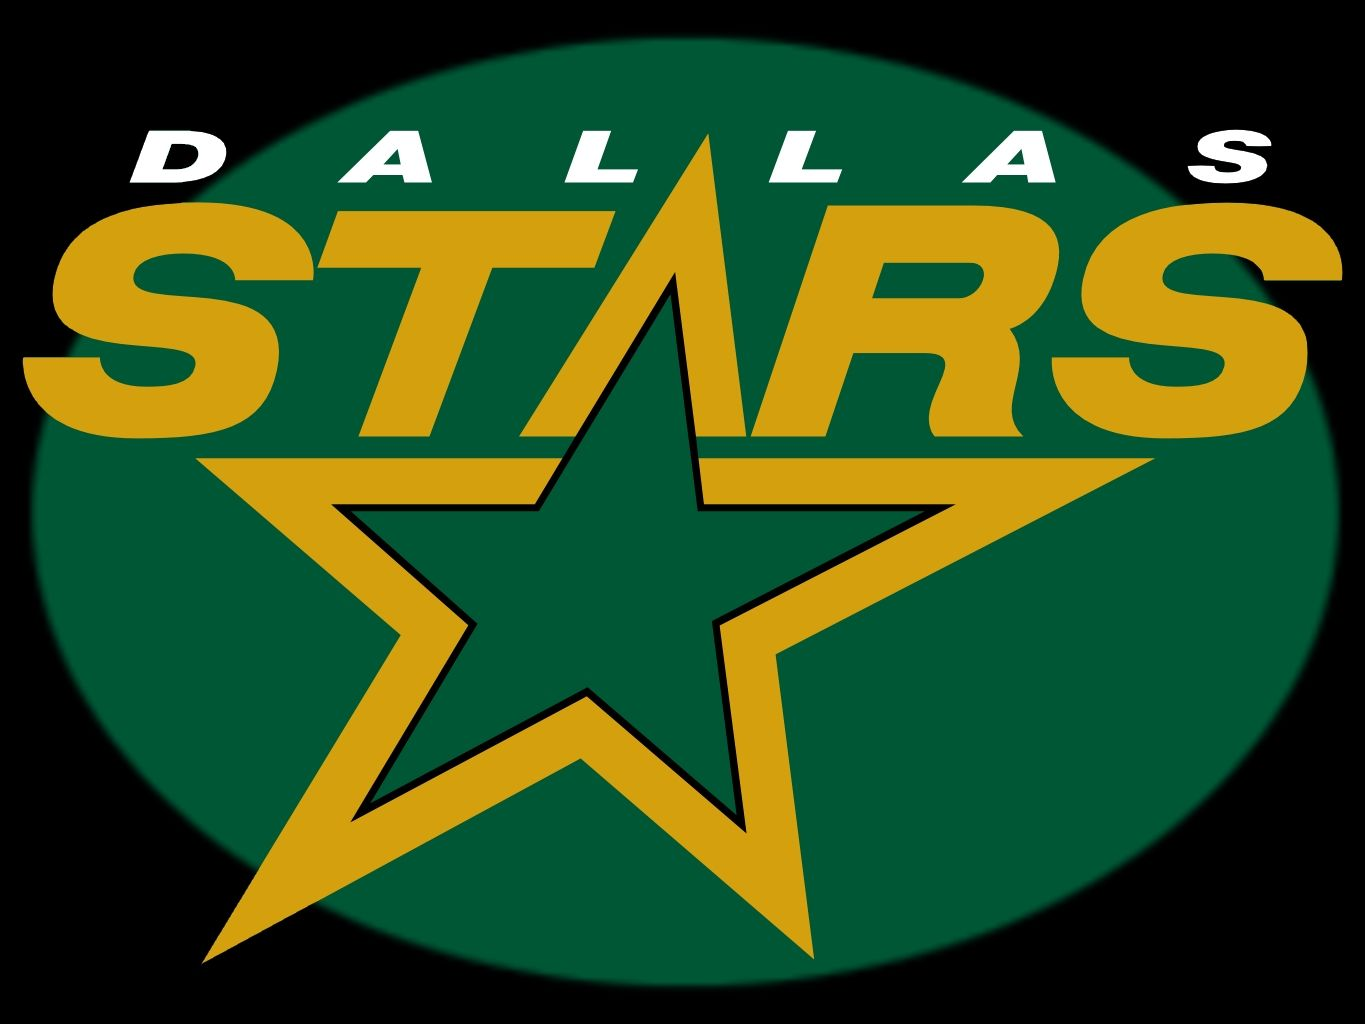 Dallas Stars Dallas Stars Wallpaper Nhl Wallpapers Hockey Wallpapers Sports Dallas Stars Dallas Nhl Logos